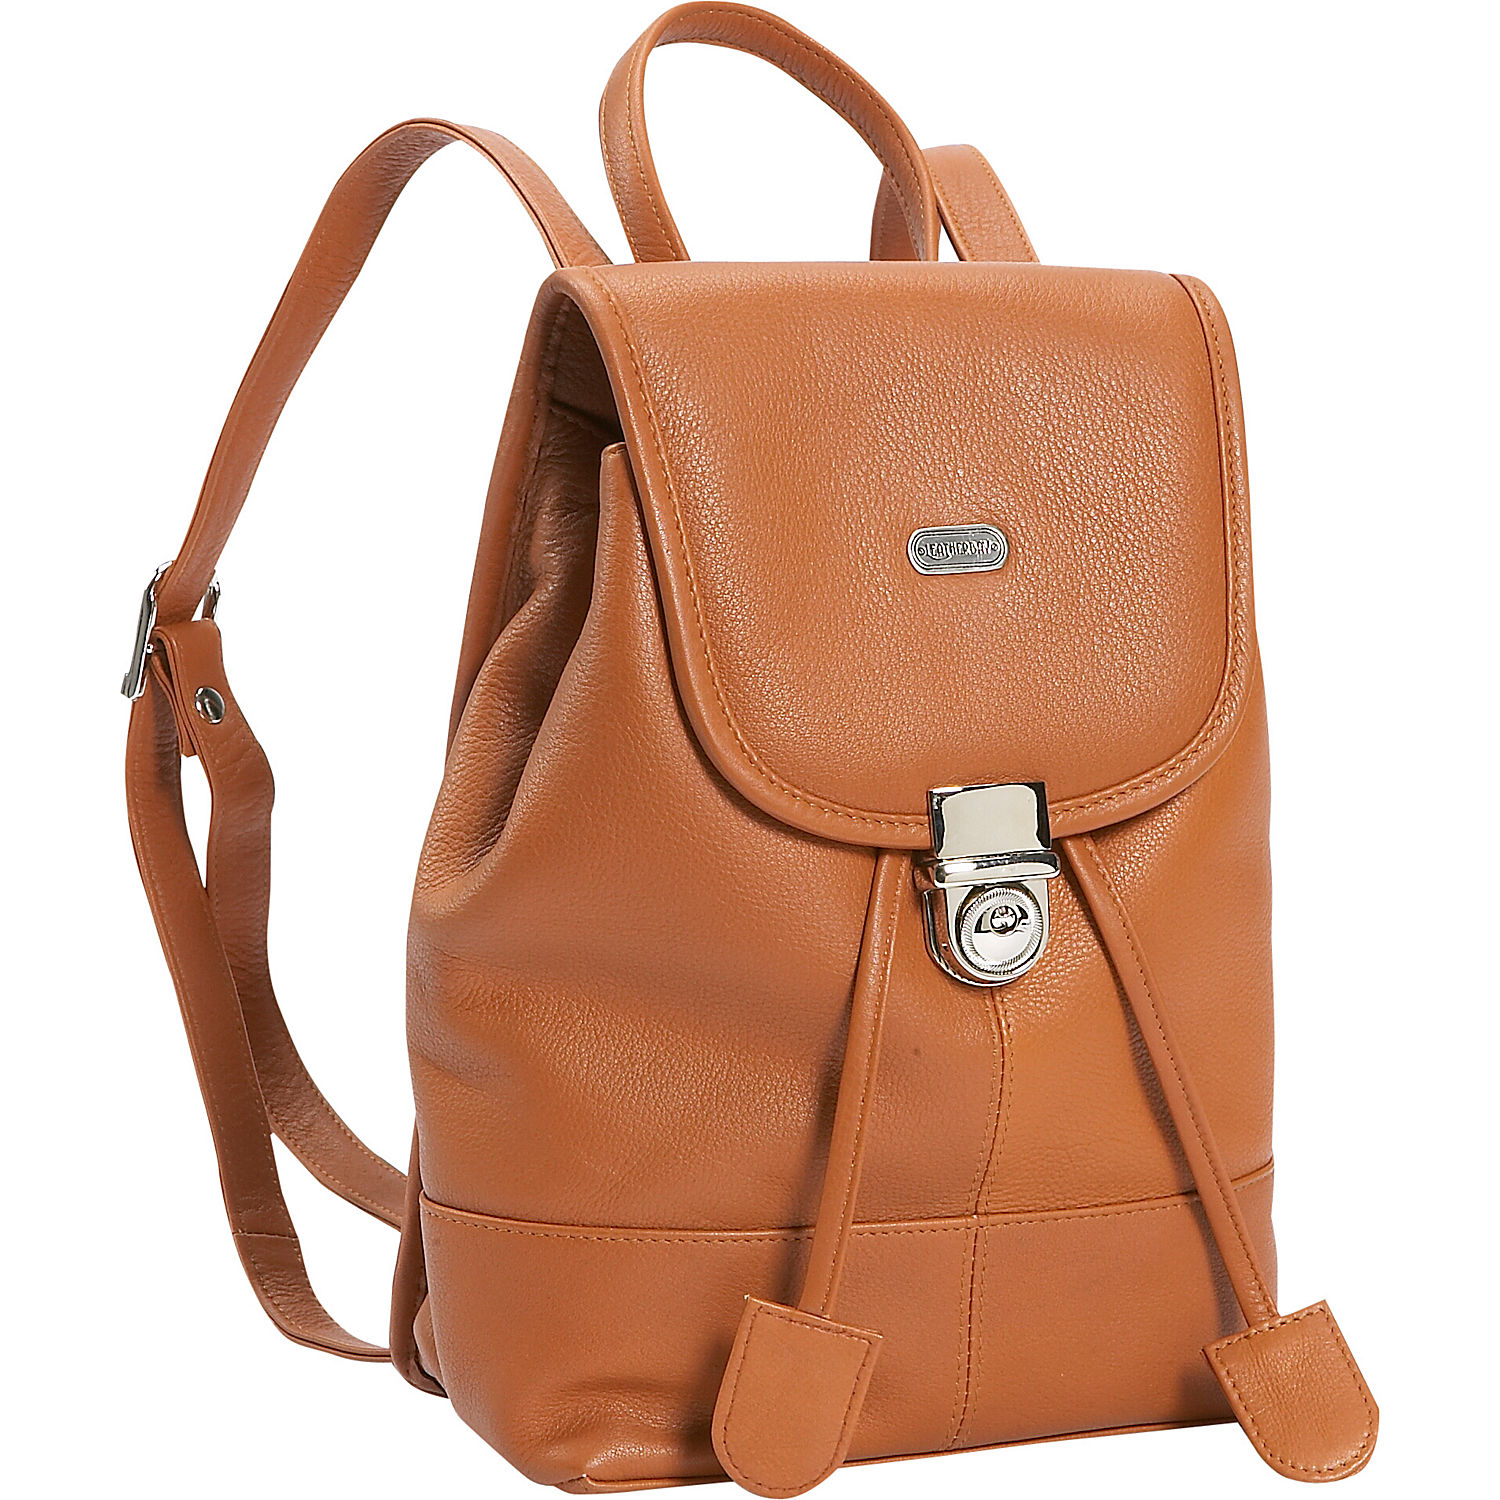 Back Purse : Leatherbay Leather Mini Backpack Purse - eBags.com